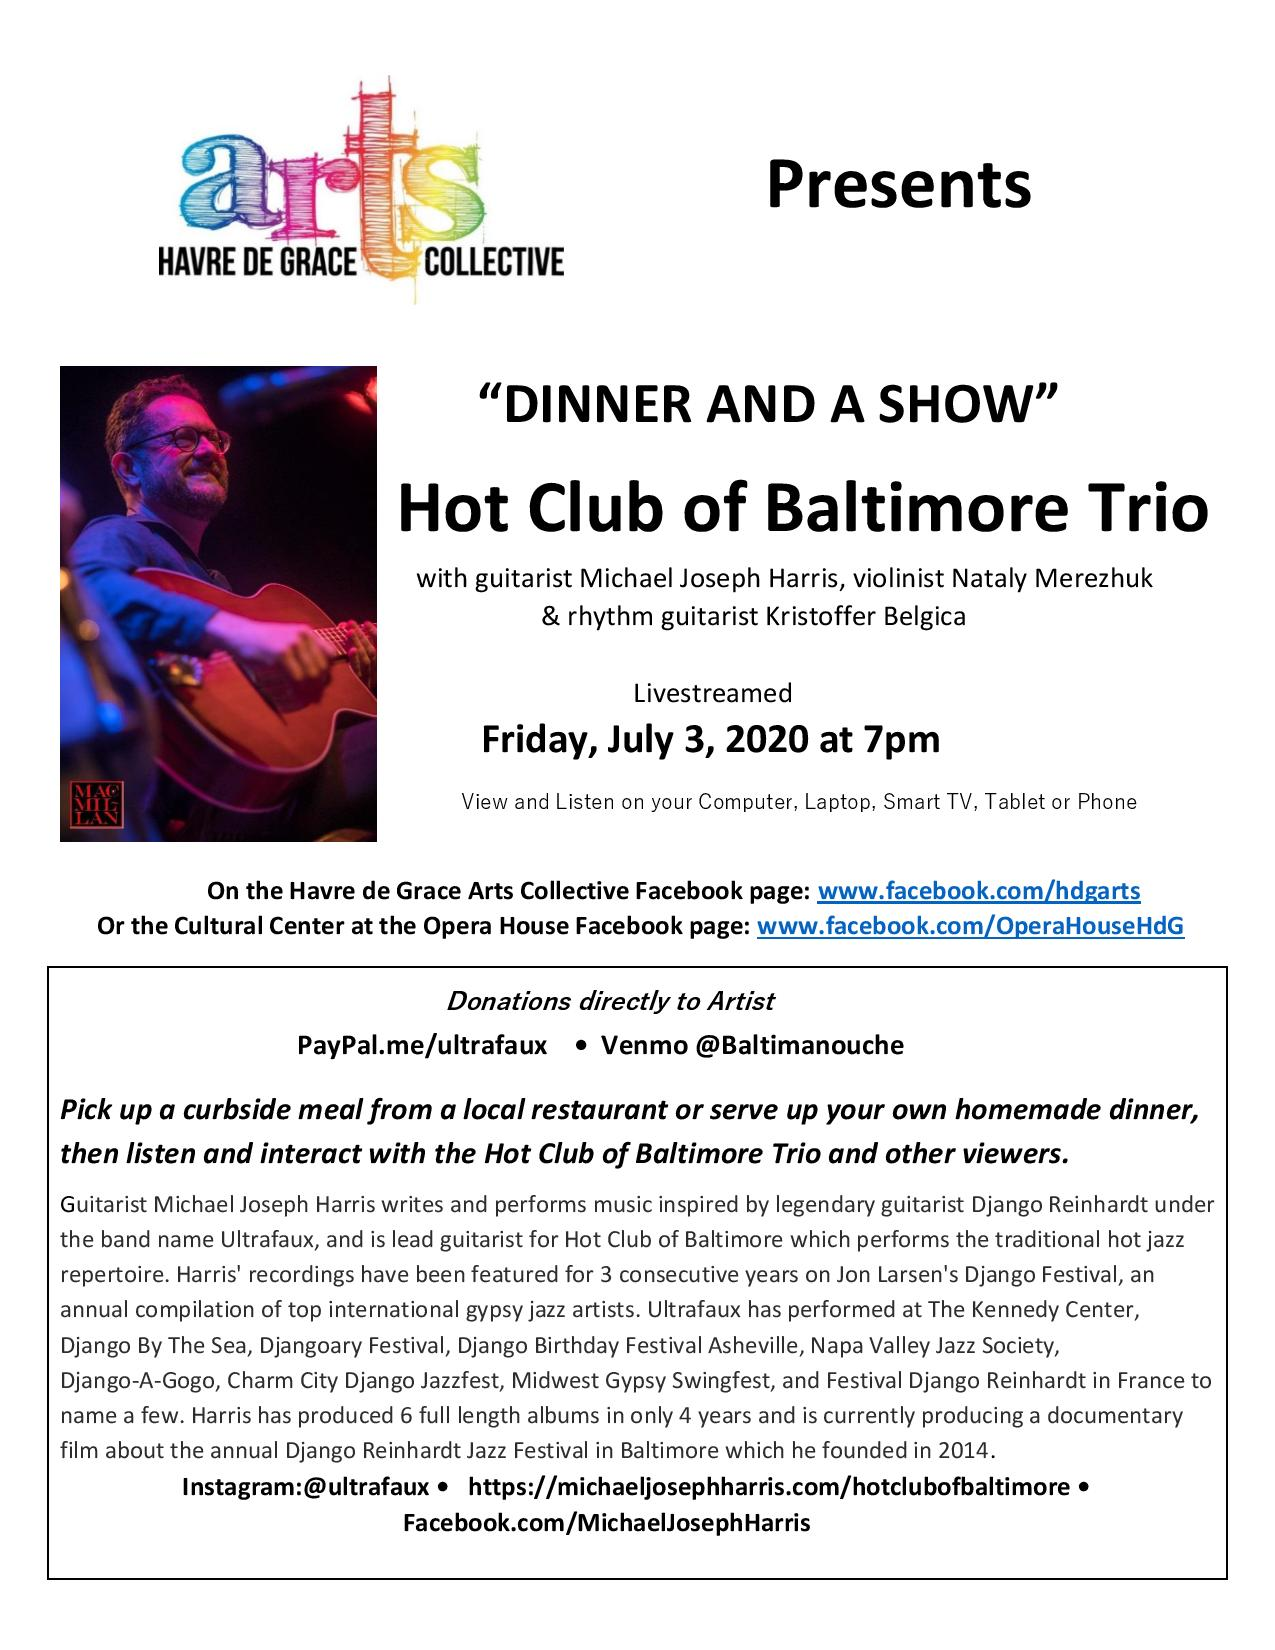 Dinner And A Show With The Hot Club Of Baltimore Trio